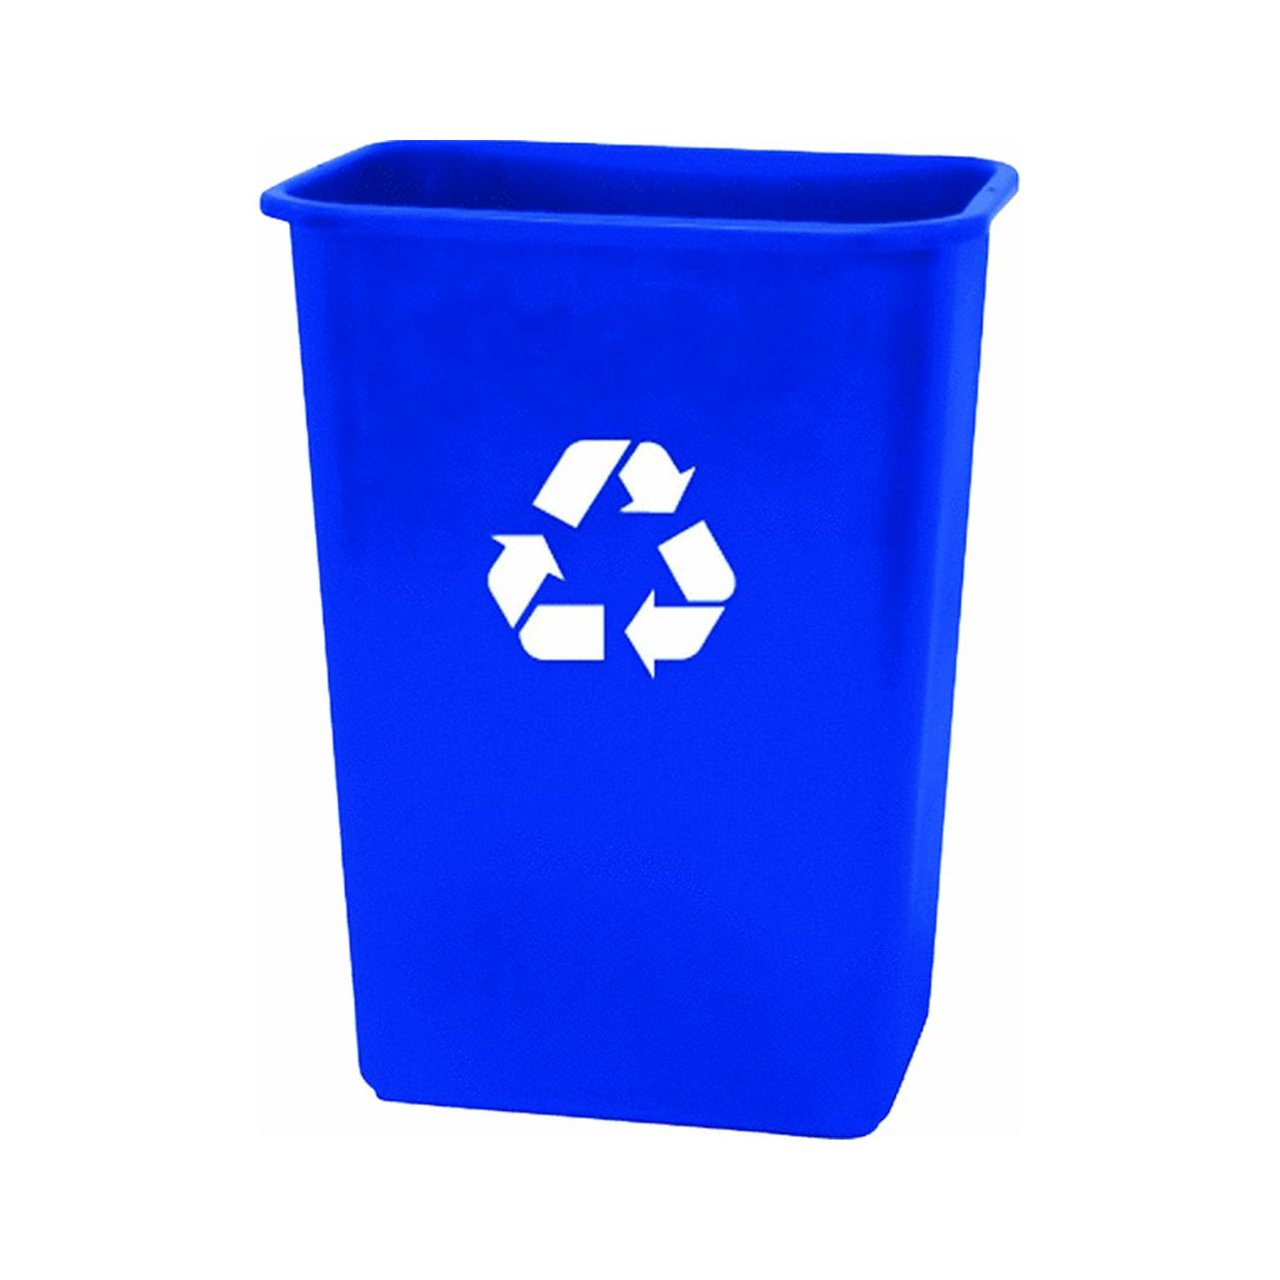 United Solutions EcoSense WB0069 Blue Plastic 41 Quart Recycling Indoor  Wastebastket 10.25 Gallon EcoSense Blue Recycling Trash/Refuse Can In Blue